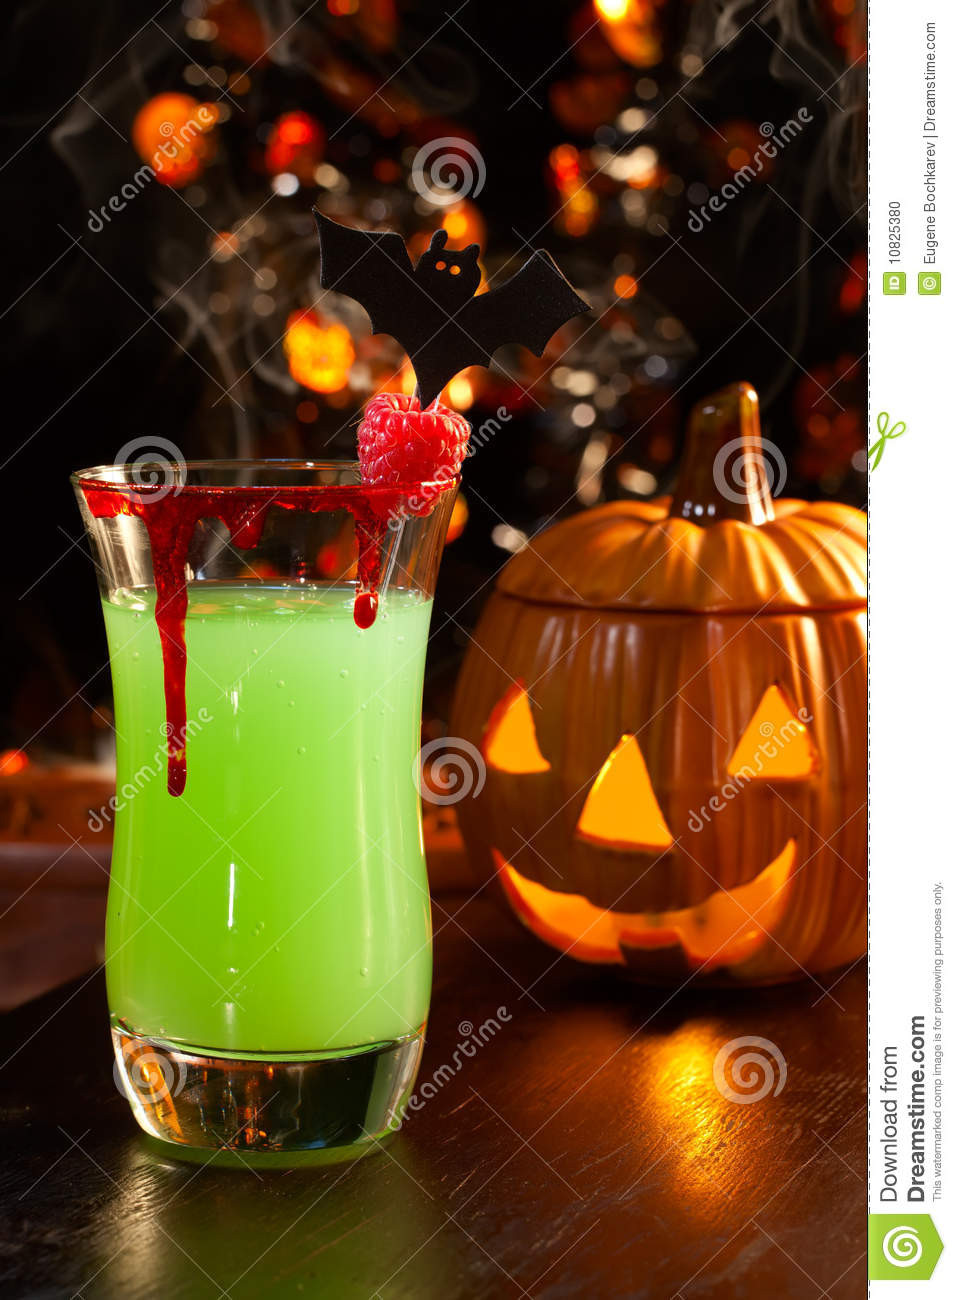 Halloween Rum Drinks  Halloween Drinks Vampire s Kiss Cocktail Stock